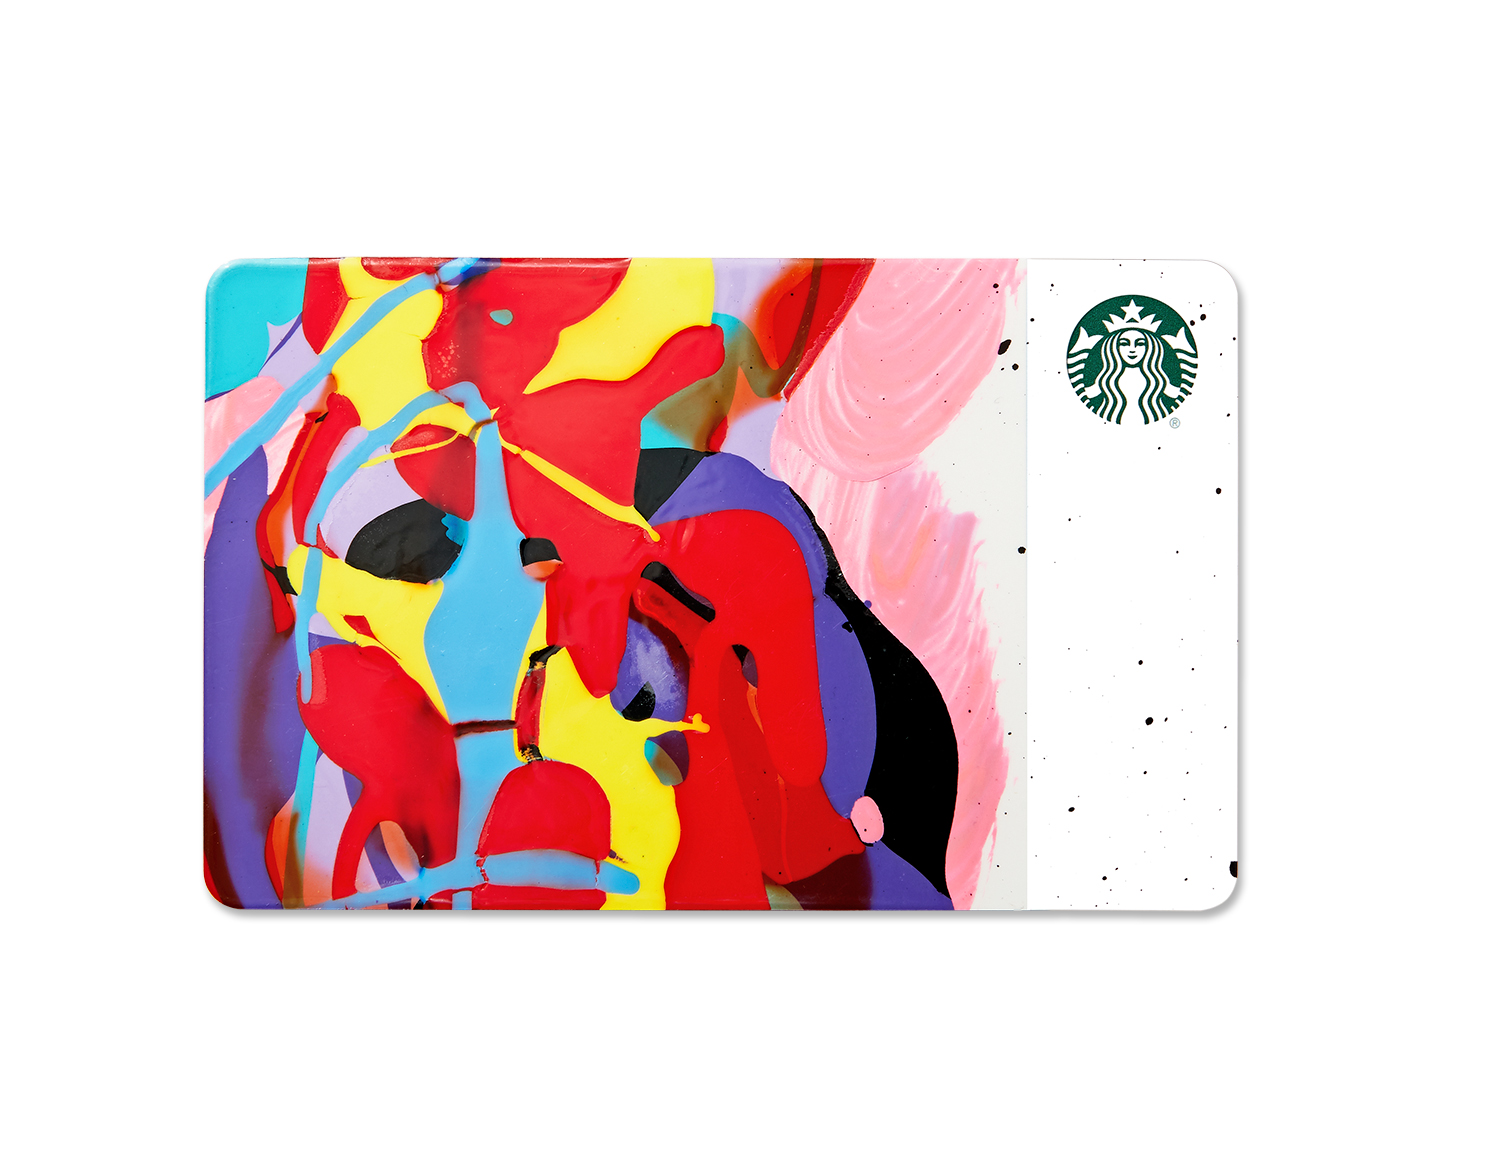 starbucks u2019 holiday gift cards are here  u2014 and they u0026 39 re